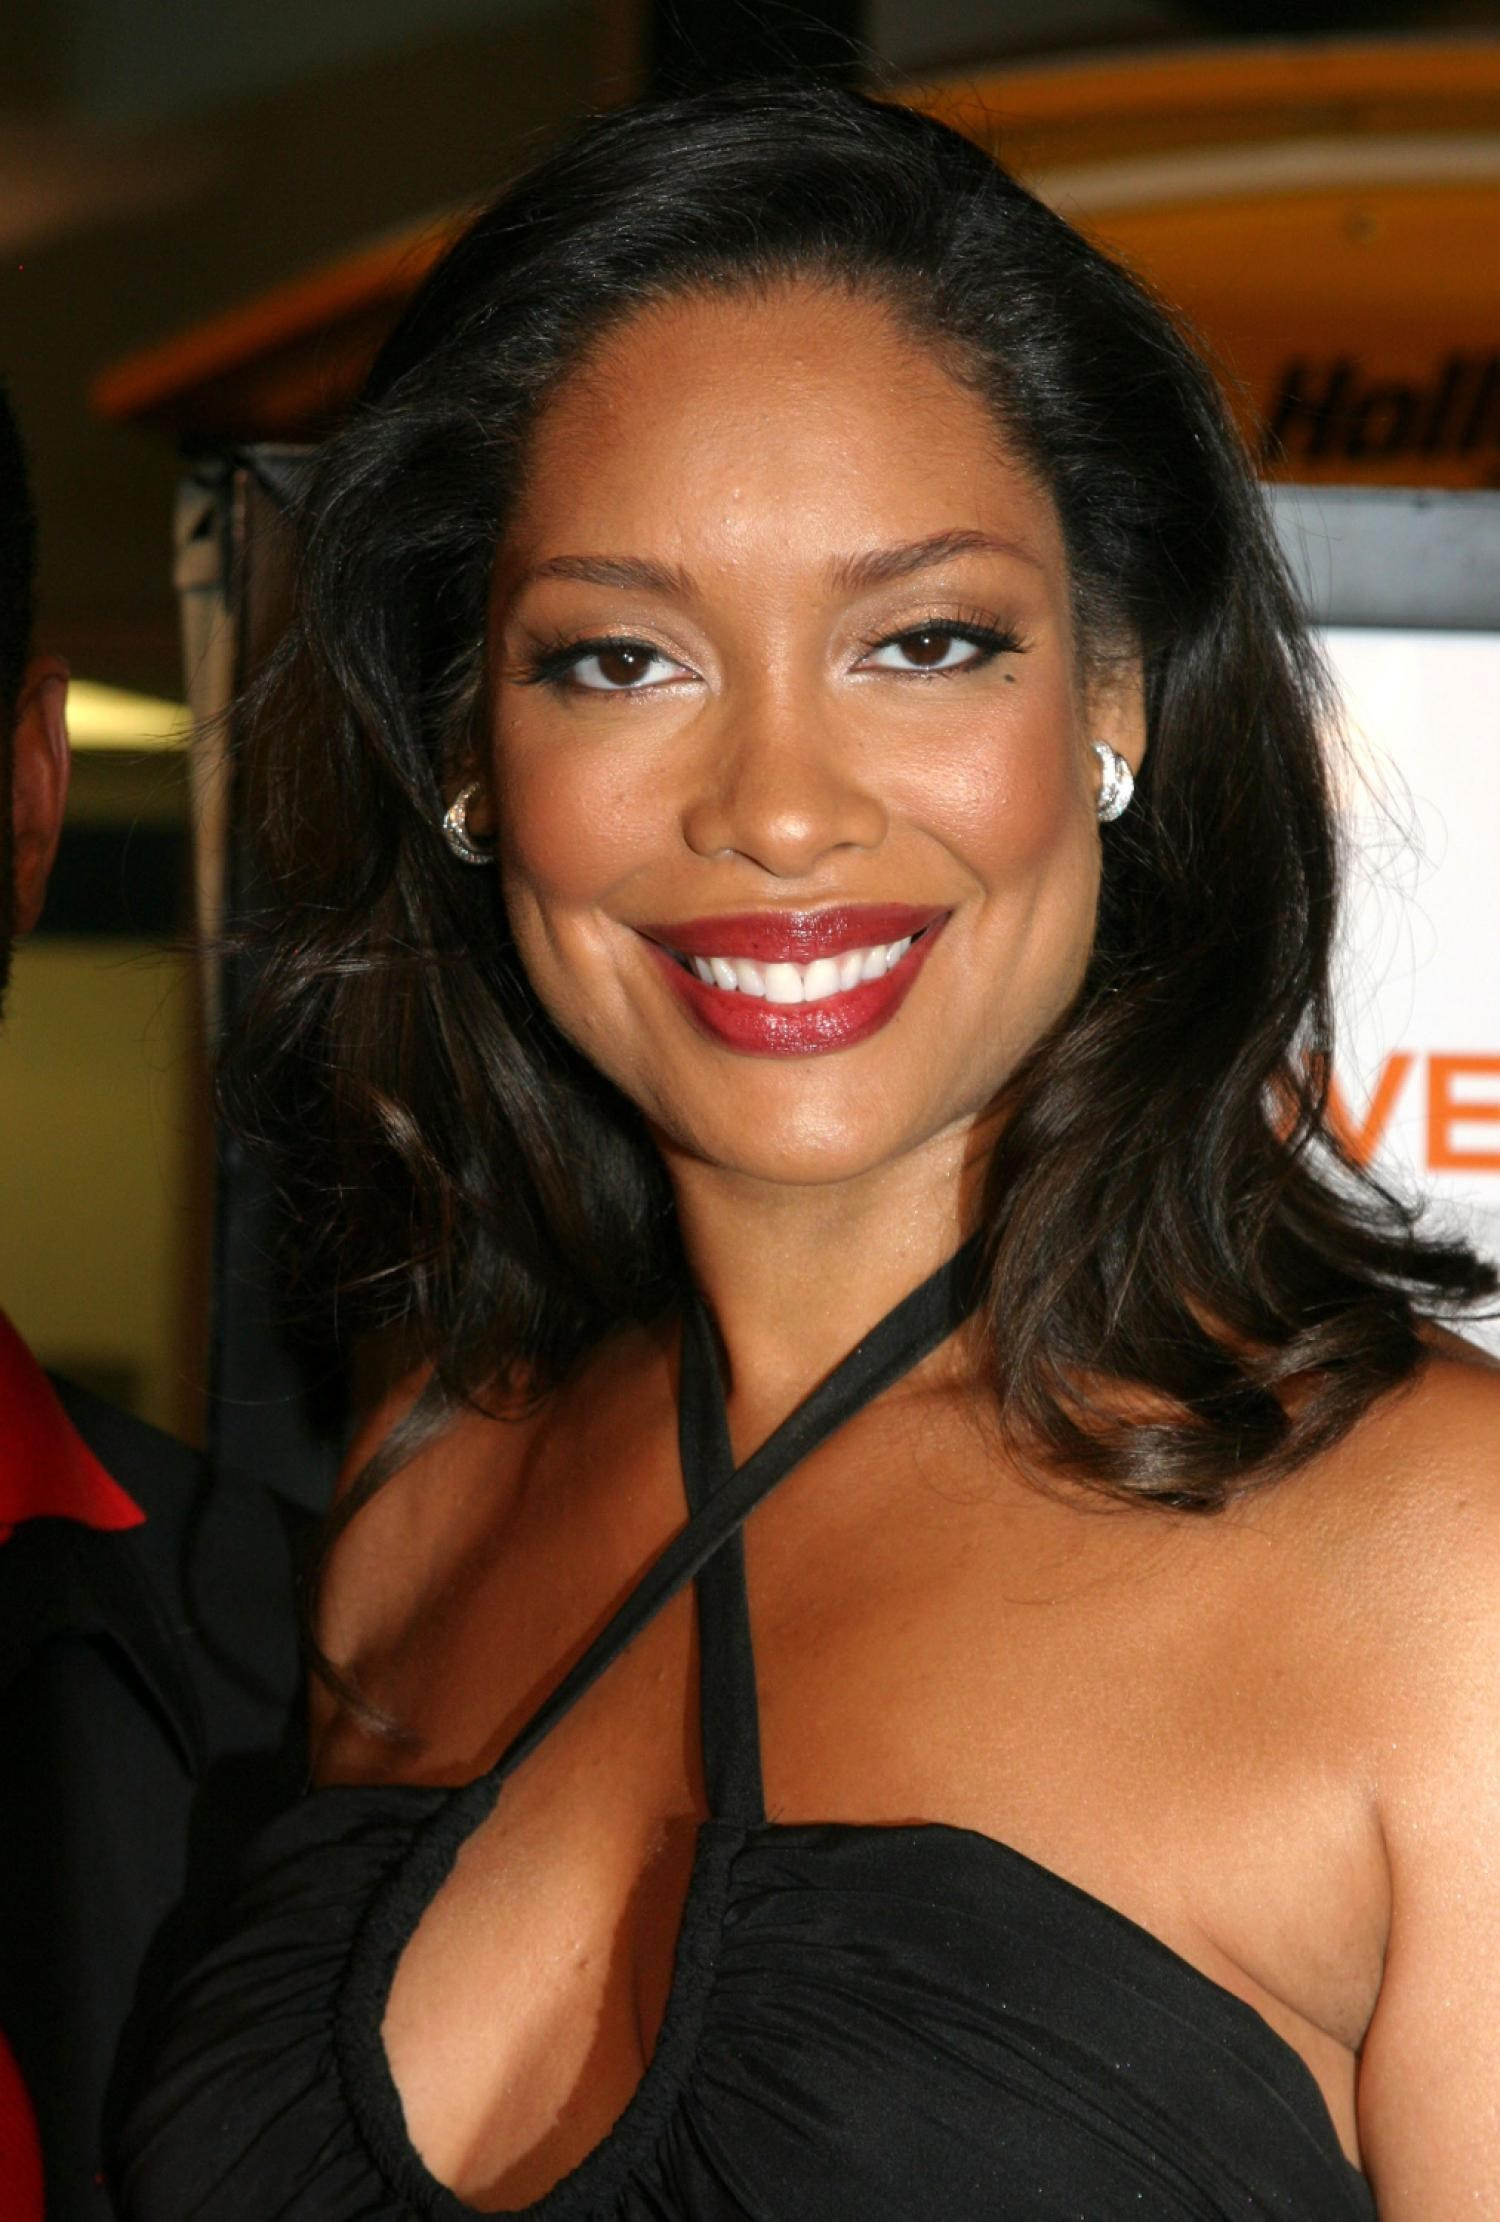 Gina Torres nude (15 photo) Video, YouTube, braless